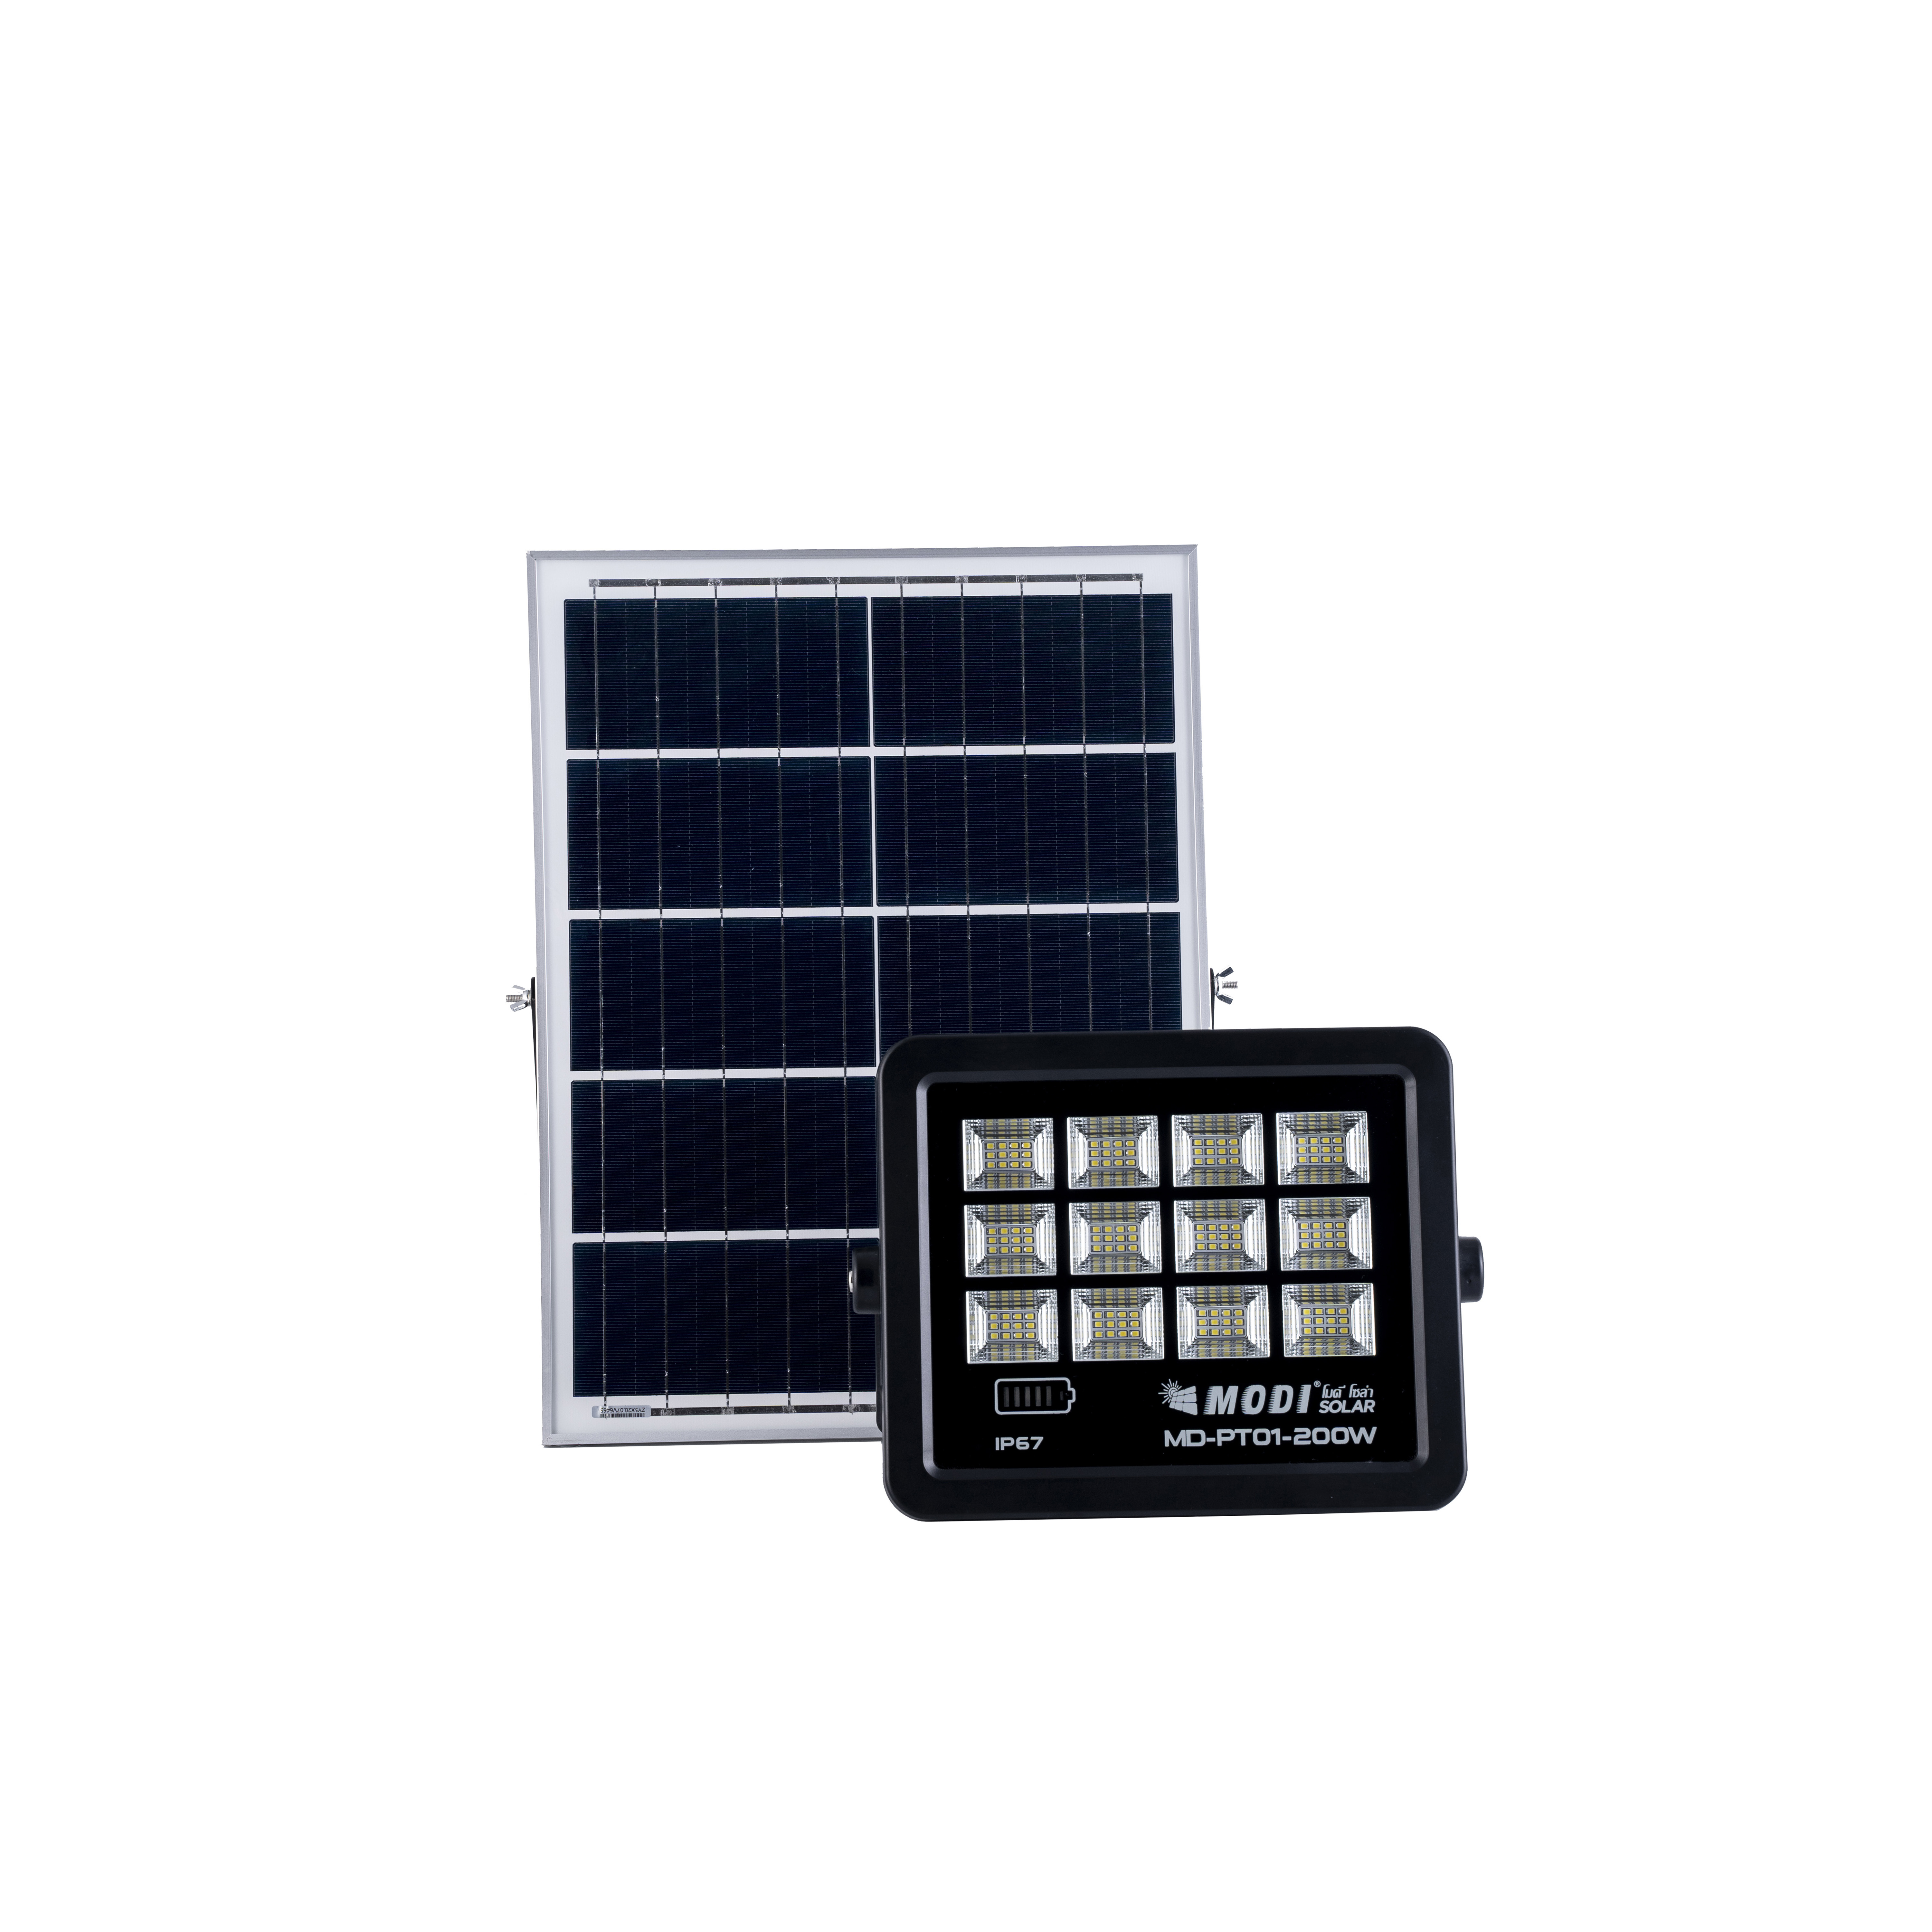 Bspro Company 200W 300W high power led sport flood lights for bridge light Solar Rechargeable  for  Villa Area